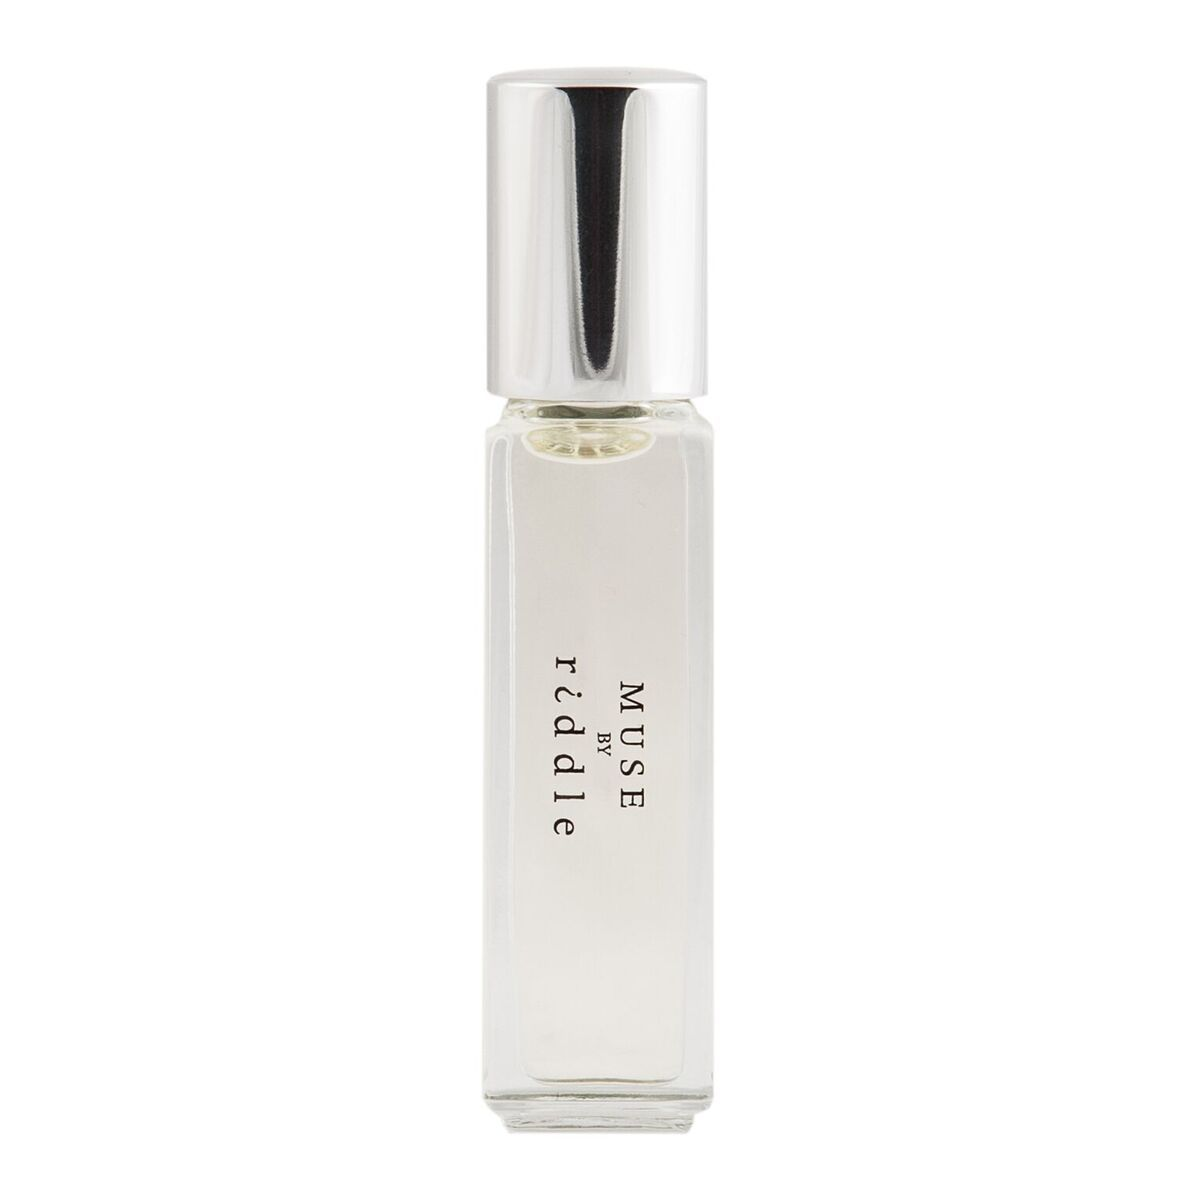 Load image into Gallery viewer, Muse / Roll-On Oil / 8ml | Riddle Oil - Fragrance